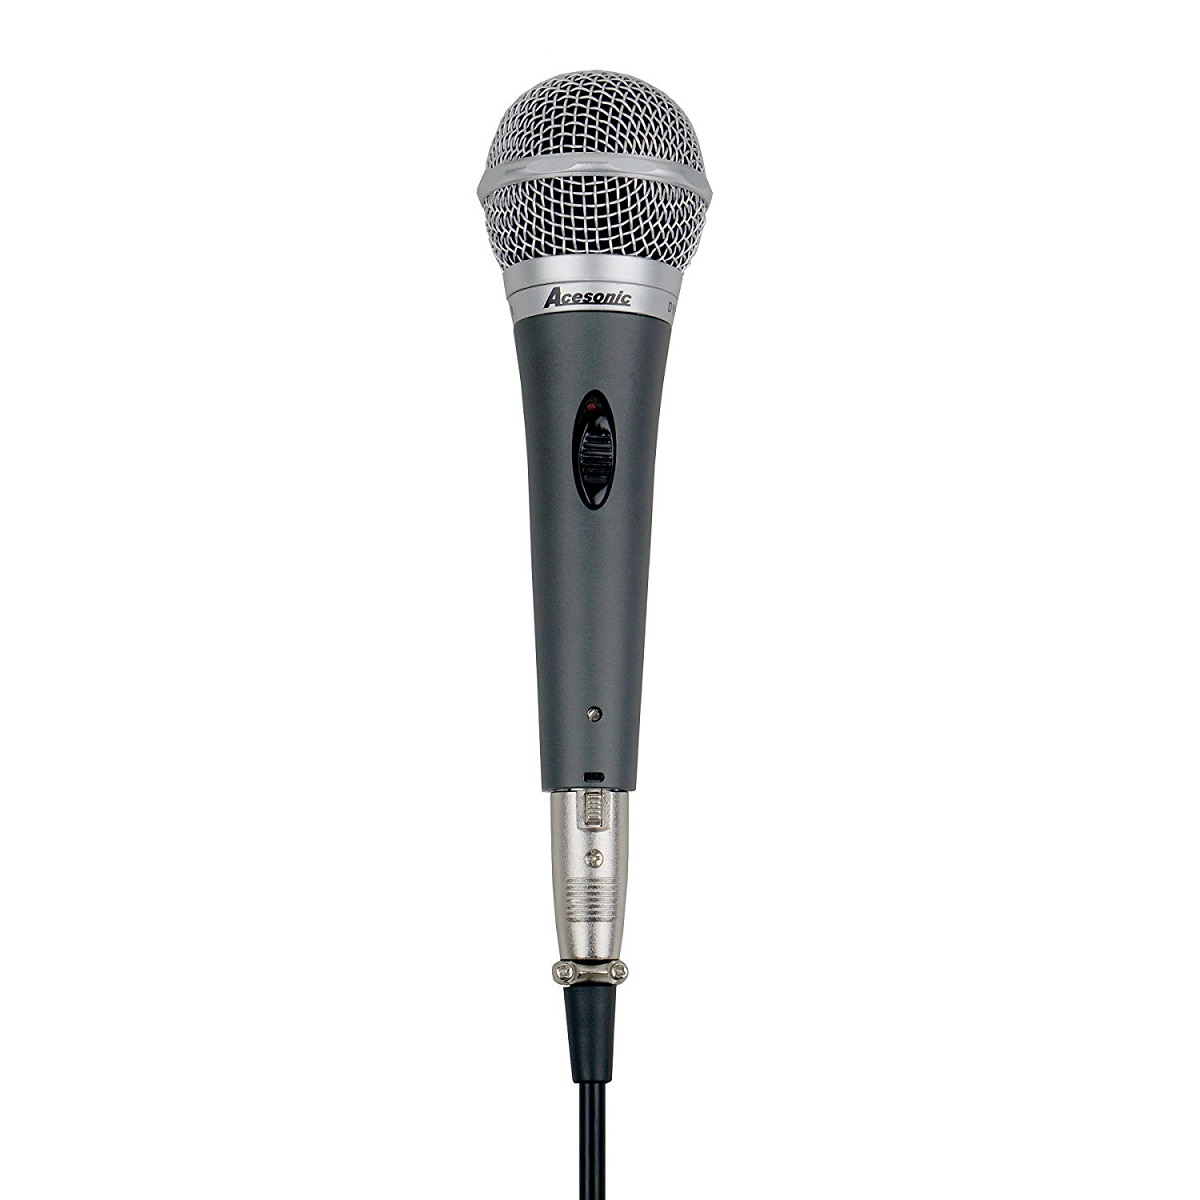 acesonic px 88 performmax professional dynamic vocal microphone. Black Bedroom Furniture Sets. Home Design Ideas